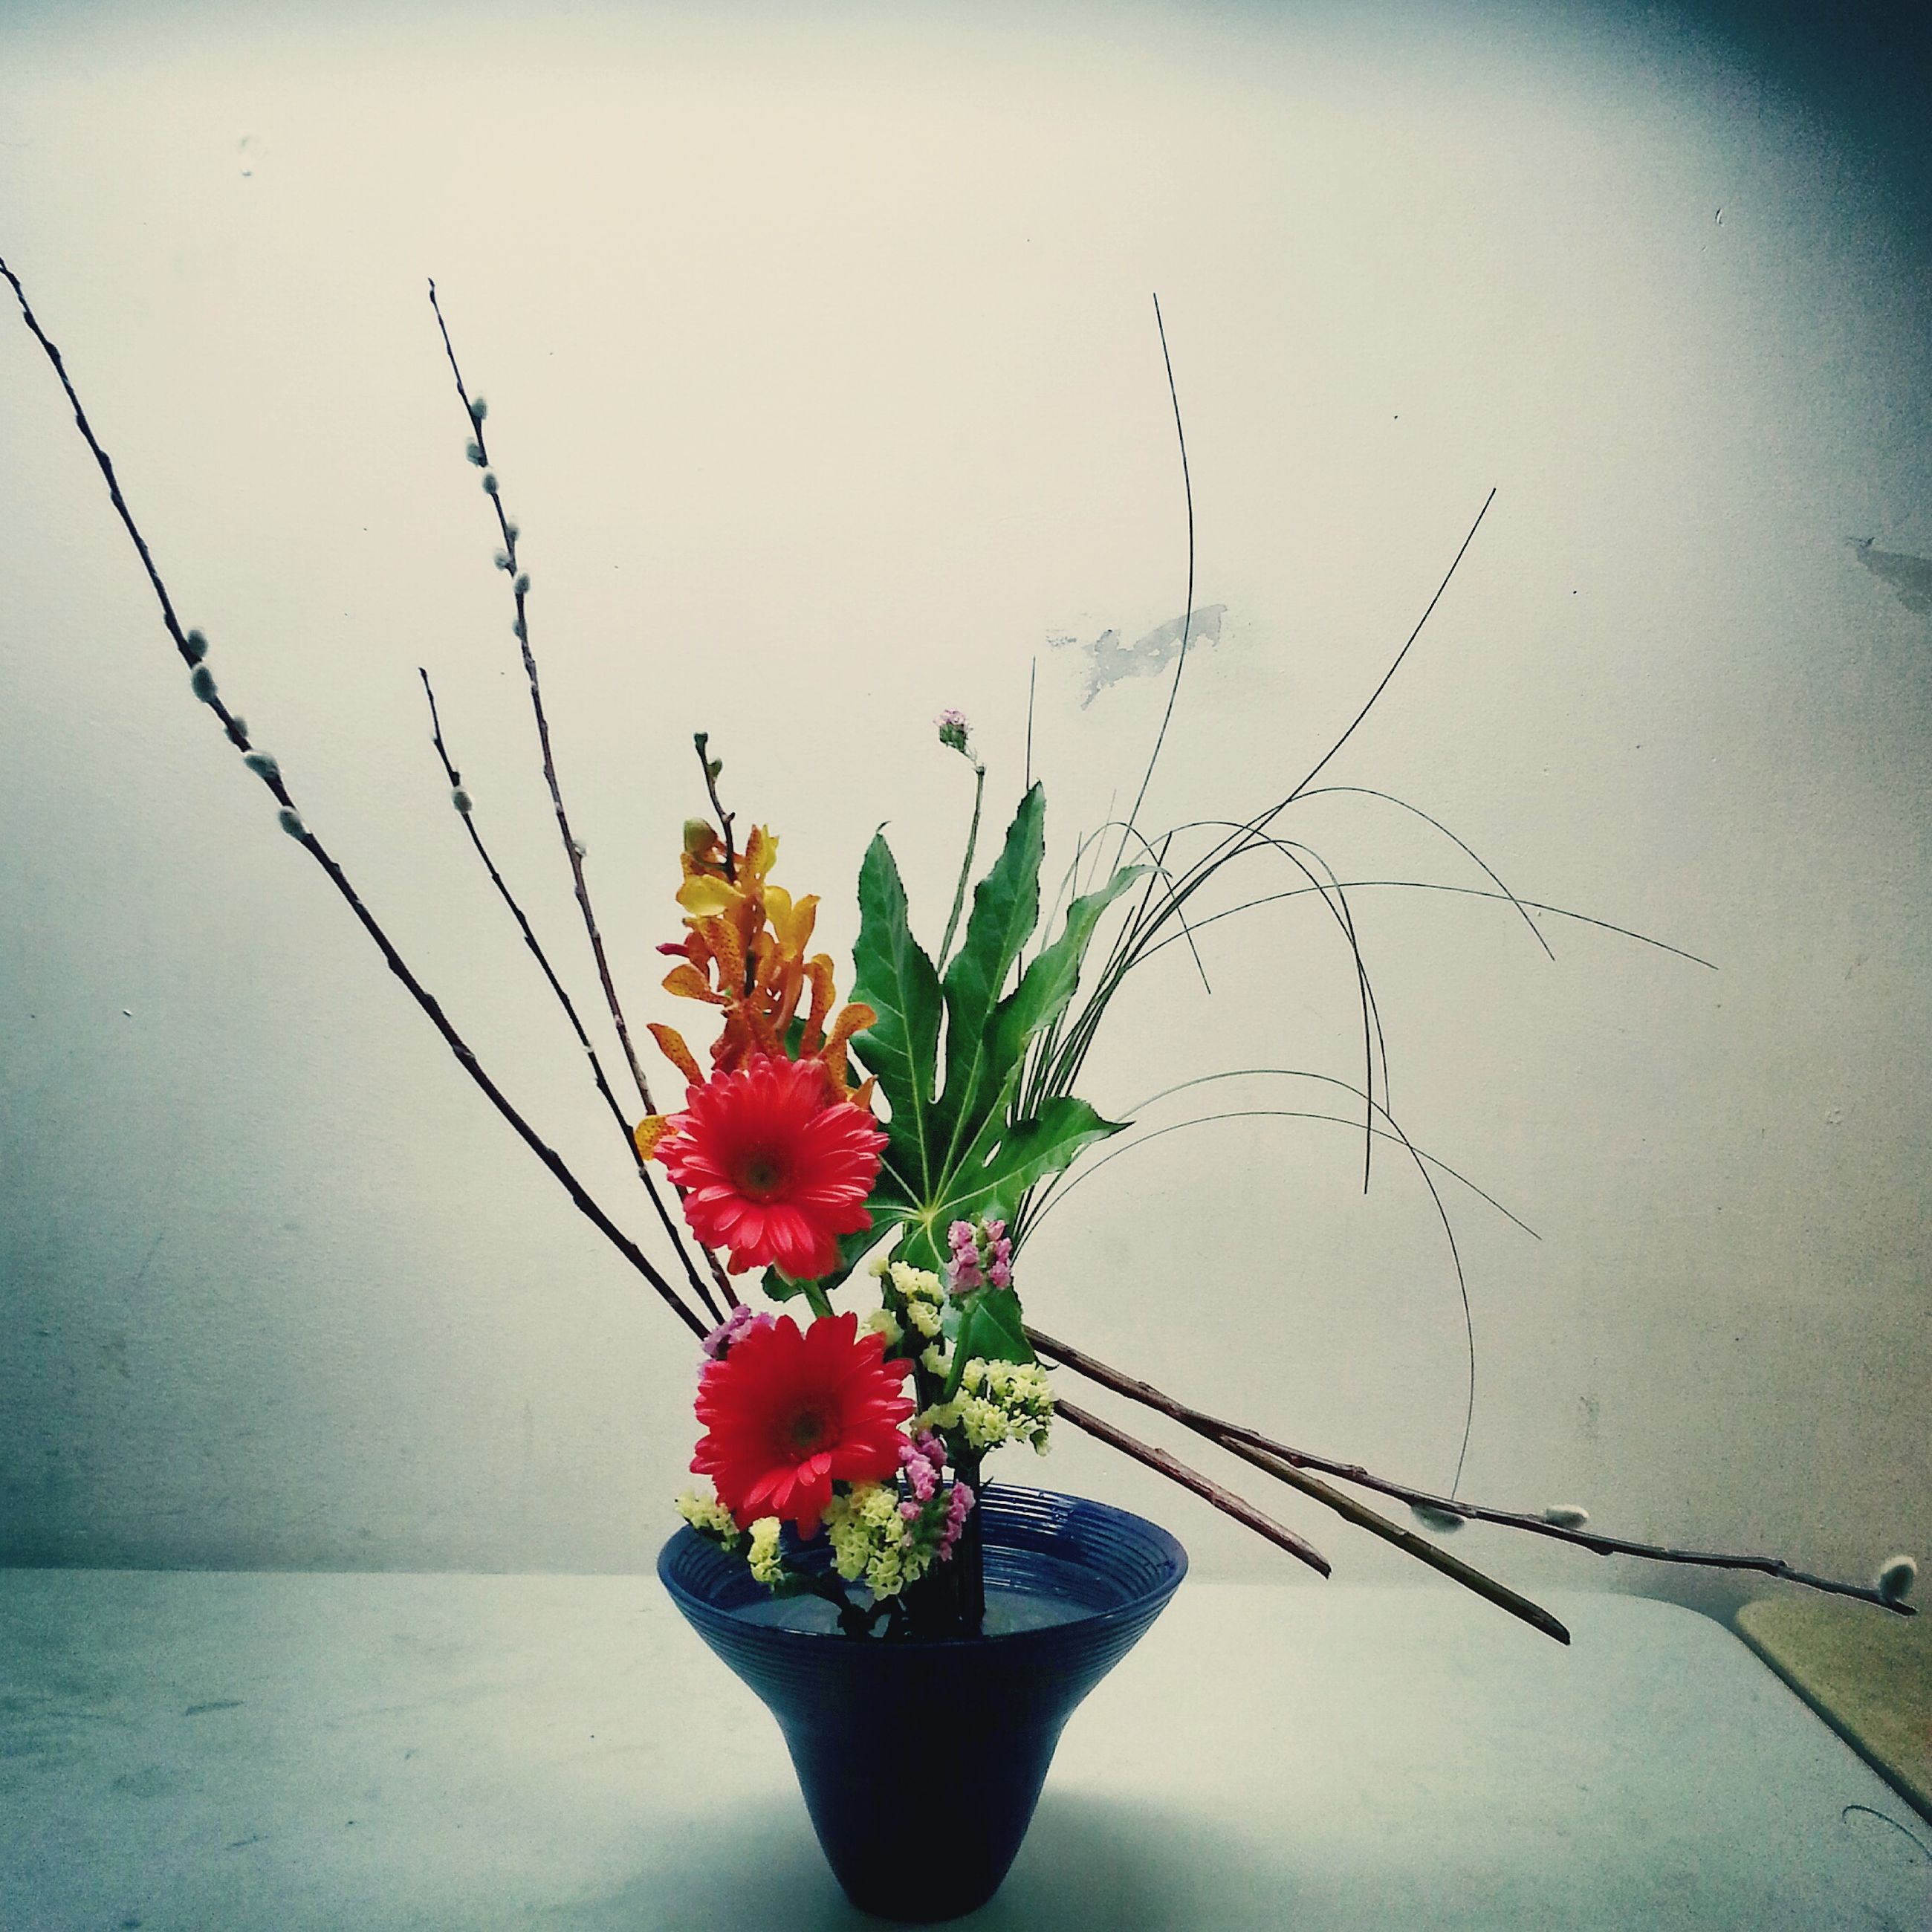 flower, freshness, fragility, stem, plant, red, petal, close-up, growth, nature, indoors, beauty in nature, bud, flower head, wall - building feature, insect, vase, animal themes, leaf, focus on foreground